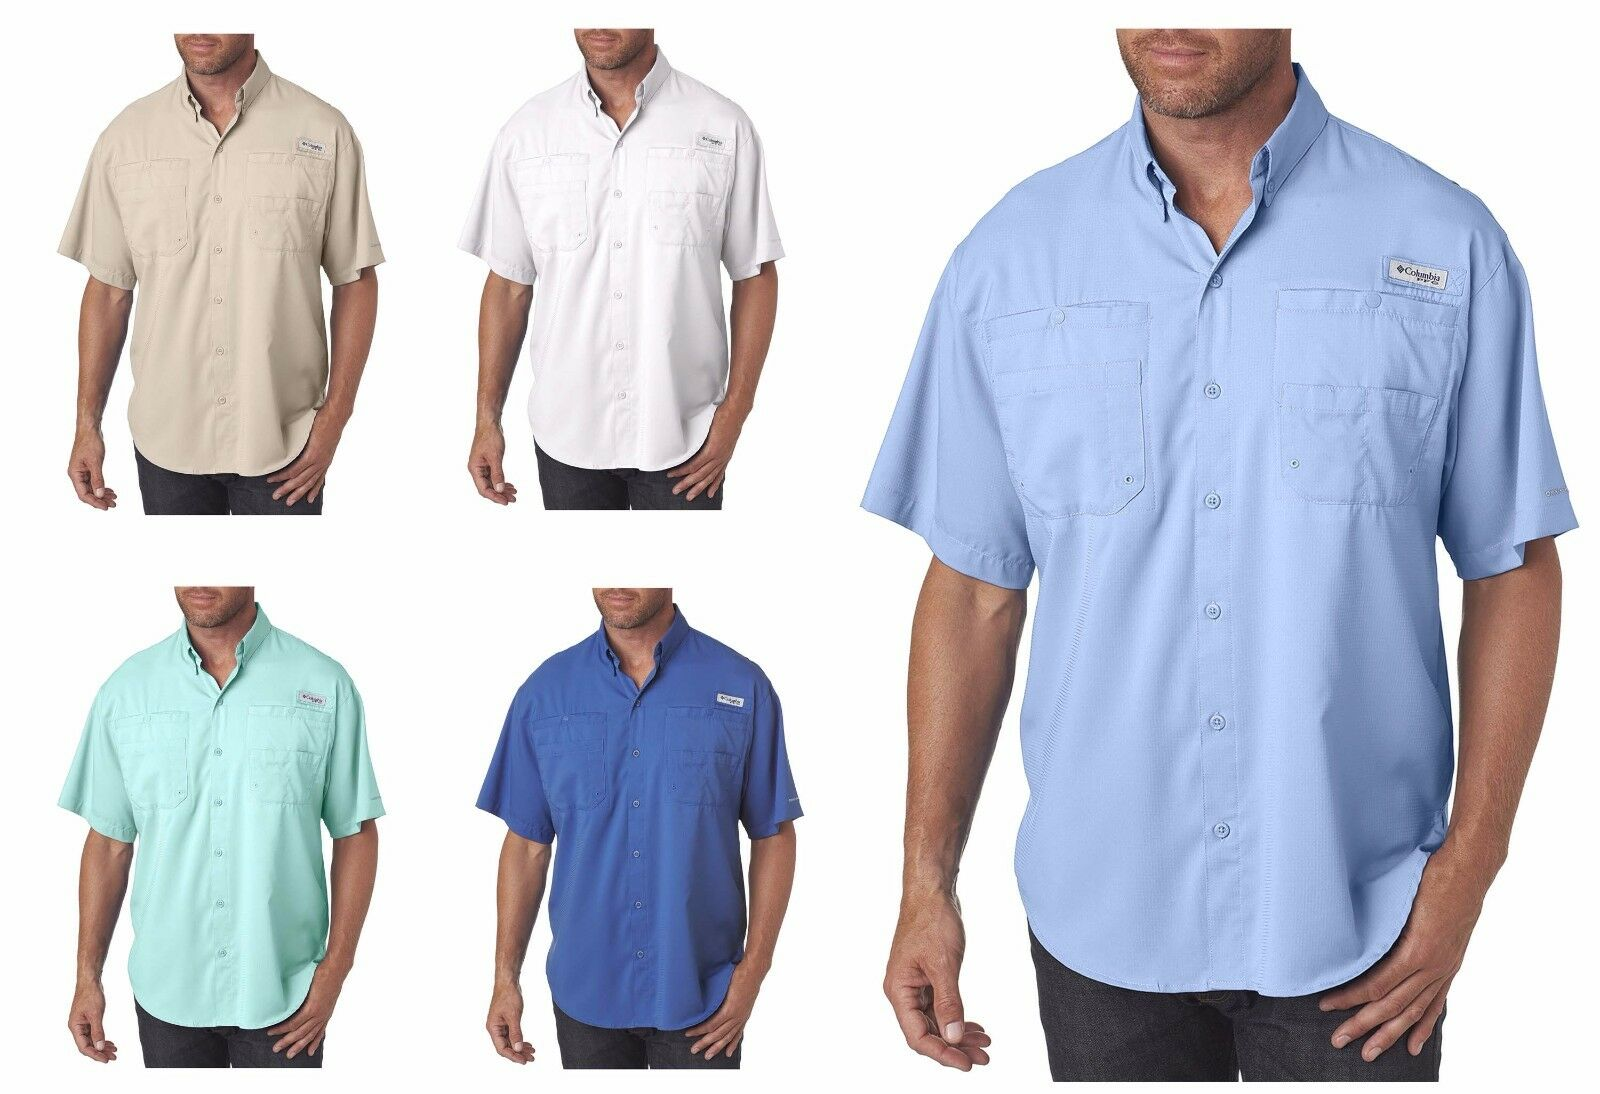 Columbia Men's Tamiami II Short-Sleeve Shirt PFG Fishing S_2XL